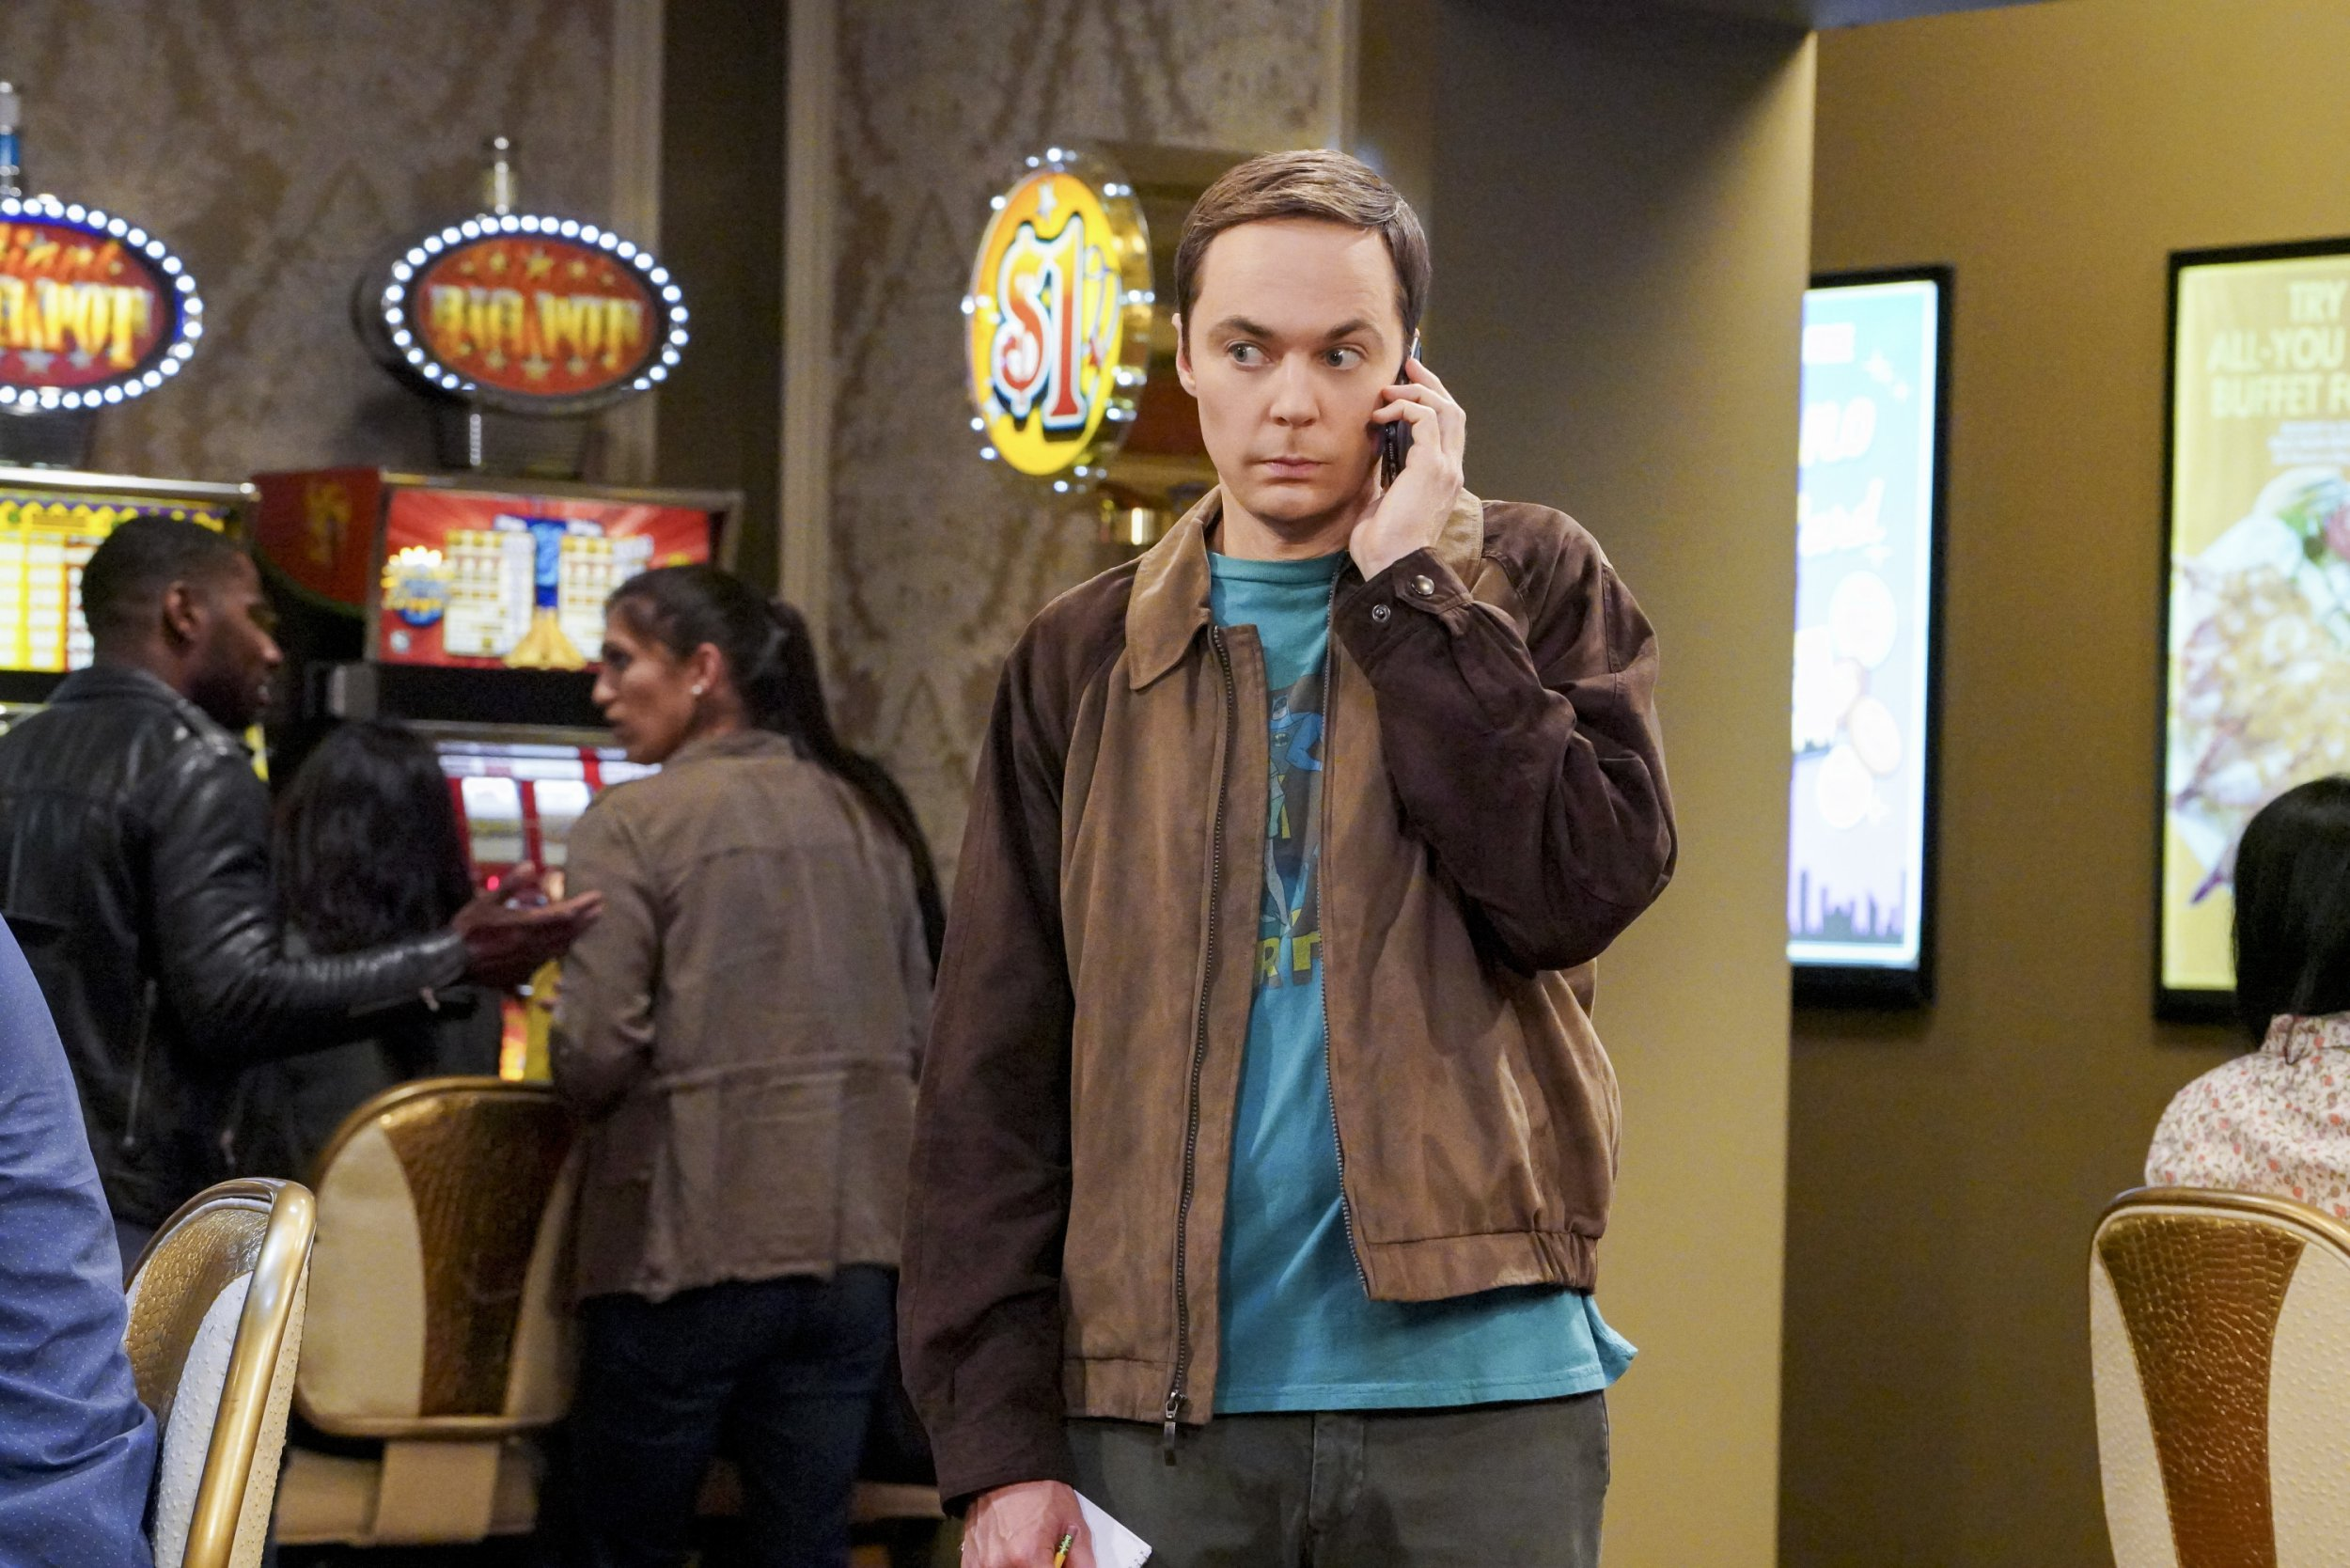 The Big Bang Theory's Jim Parsons lands new Netflix gig as CBS officially kick off countdown to final episode